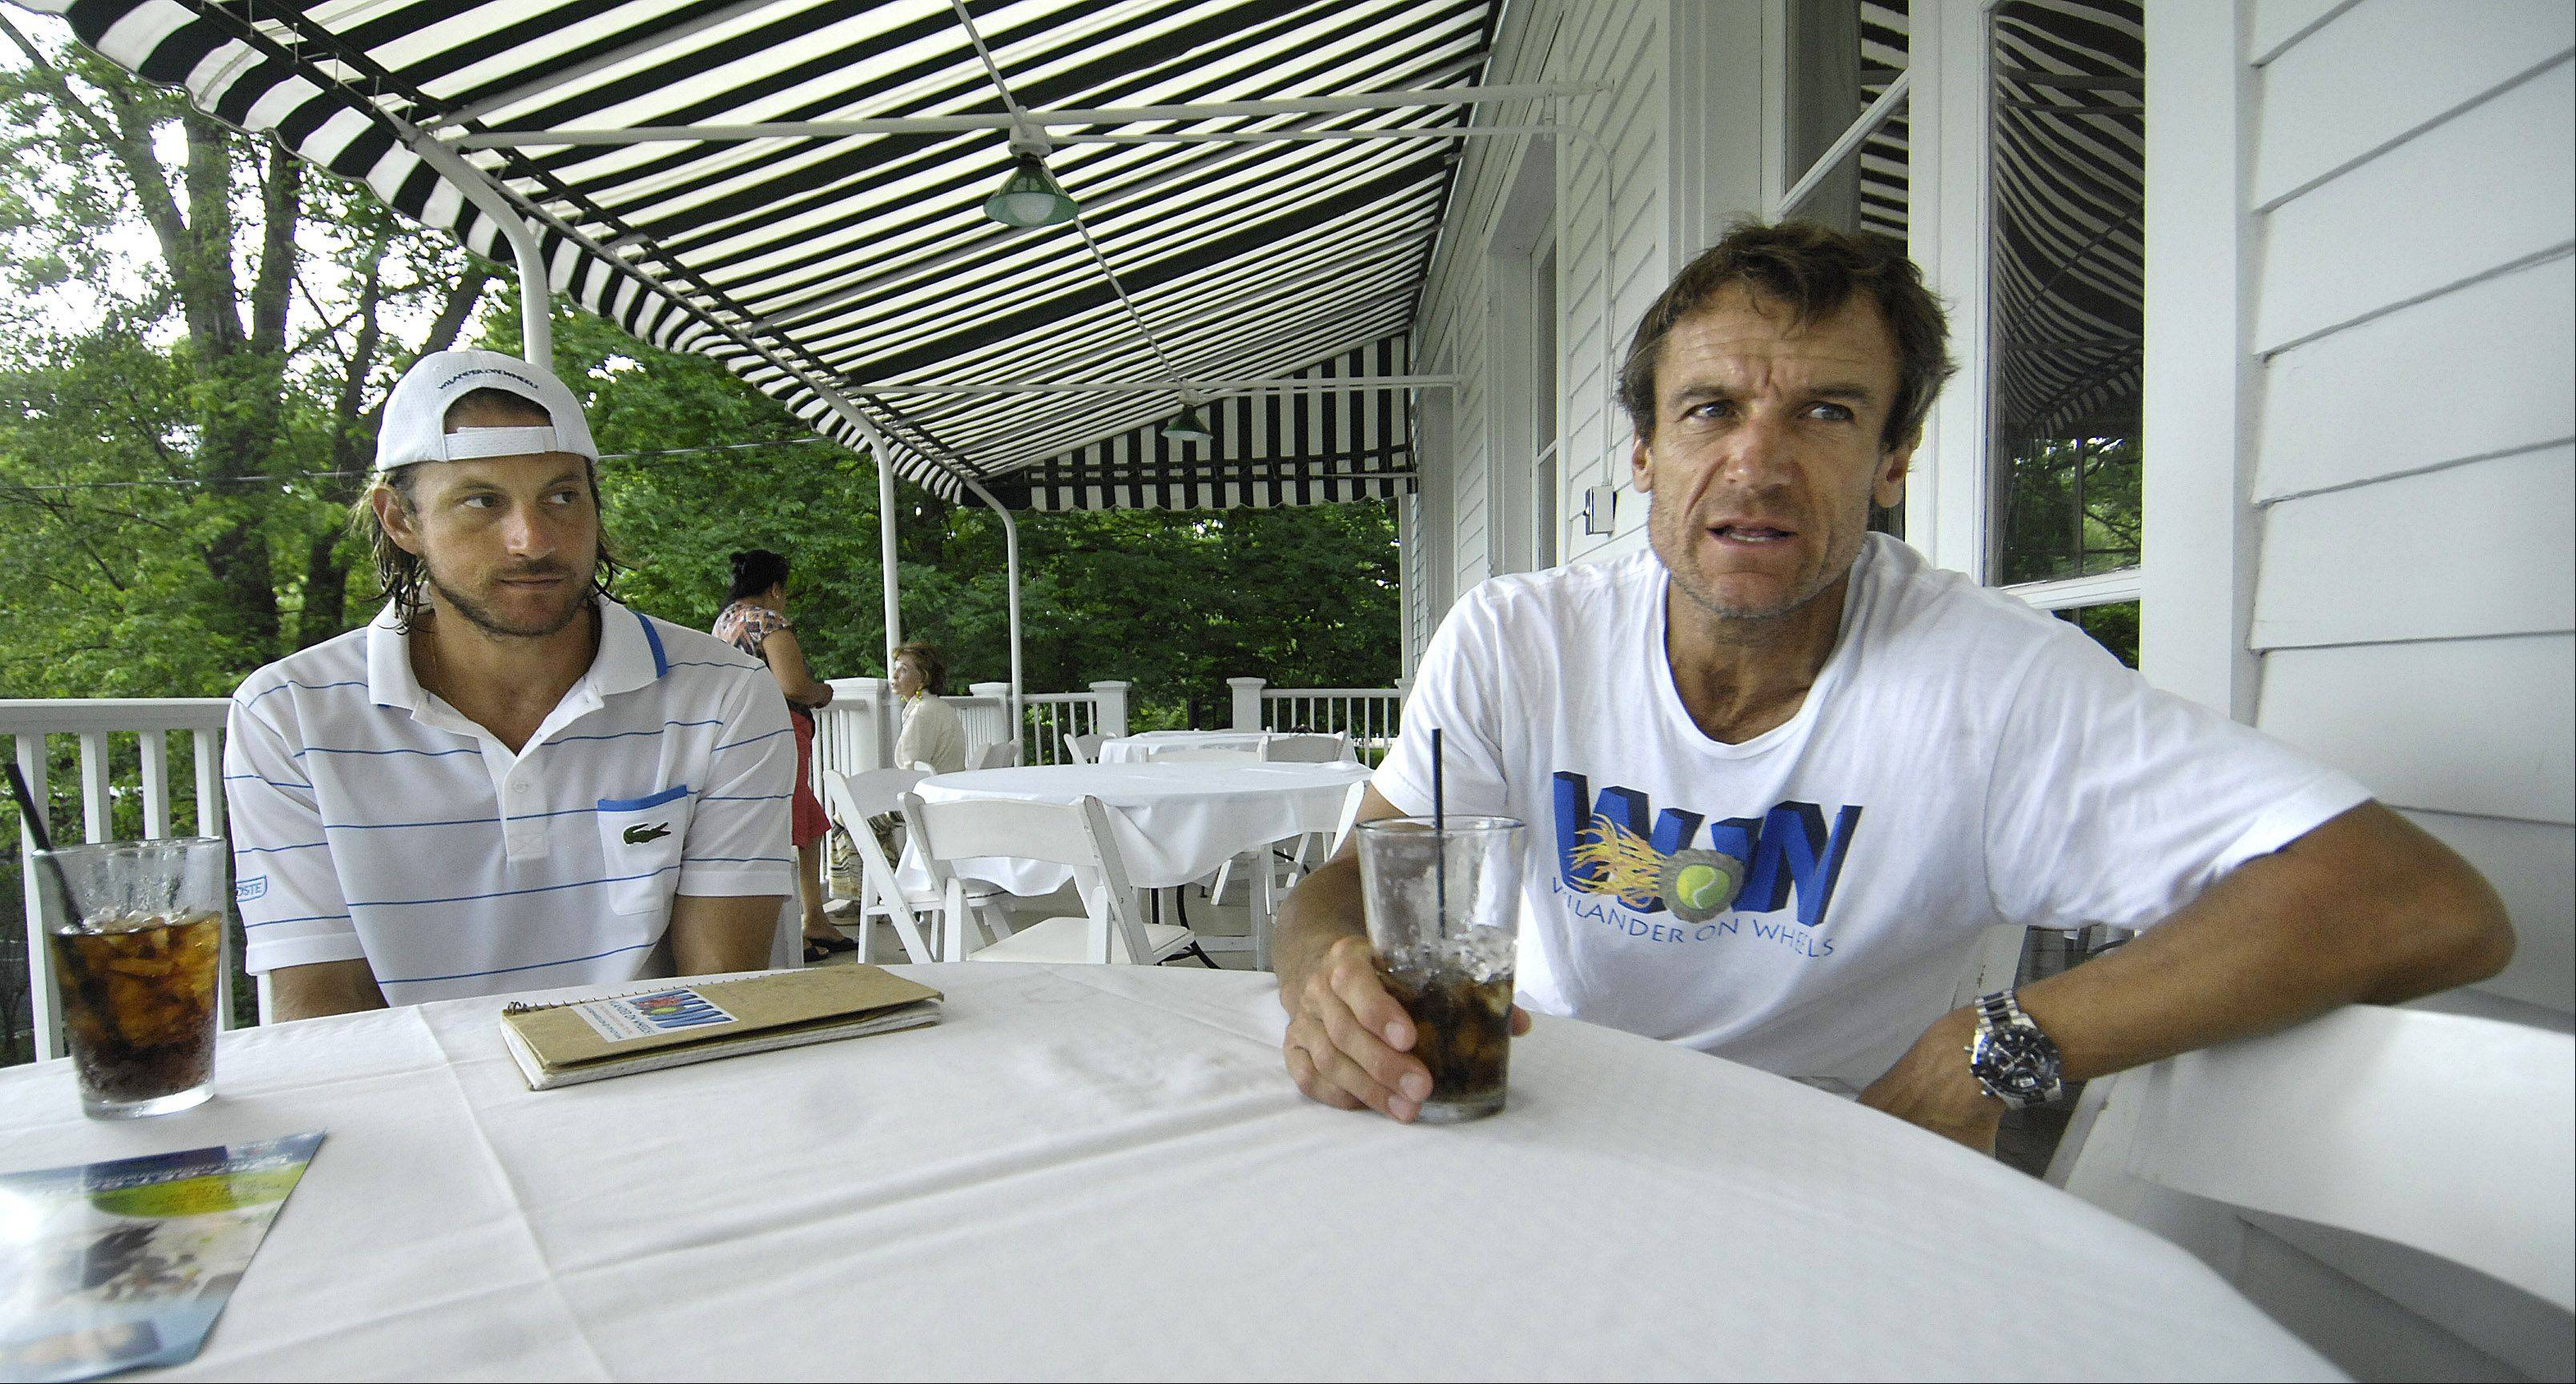 Tennis great Mats Wilander, right, with business partner Cameron Lickle at the Dunham Woods Riding Club in Wayne Wednesday. Daily Herald reporter -- and tennis fanatic -- Lenore Adkins had a chance to chat with Wilander last week.